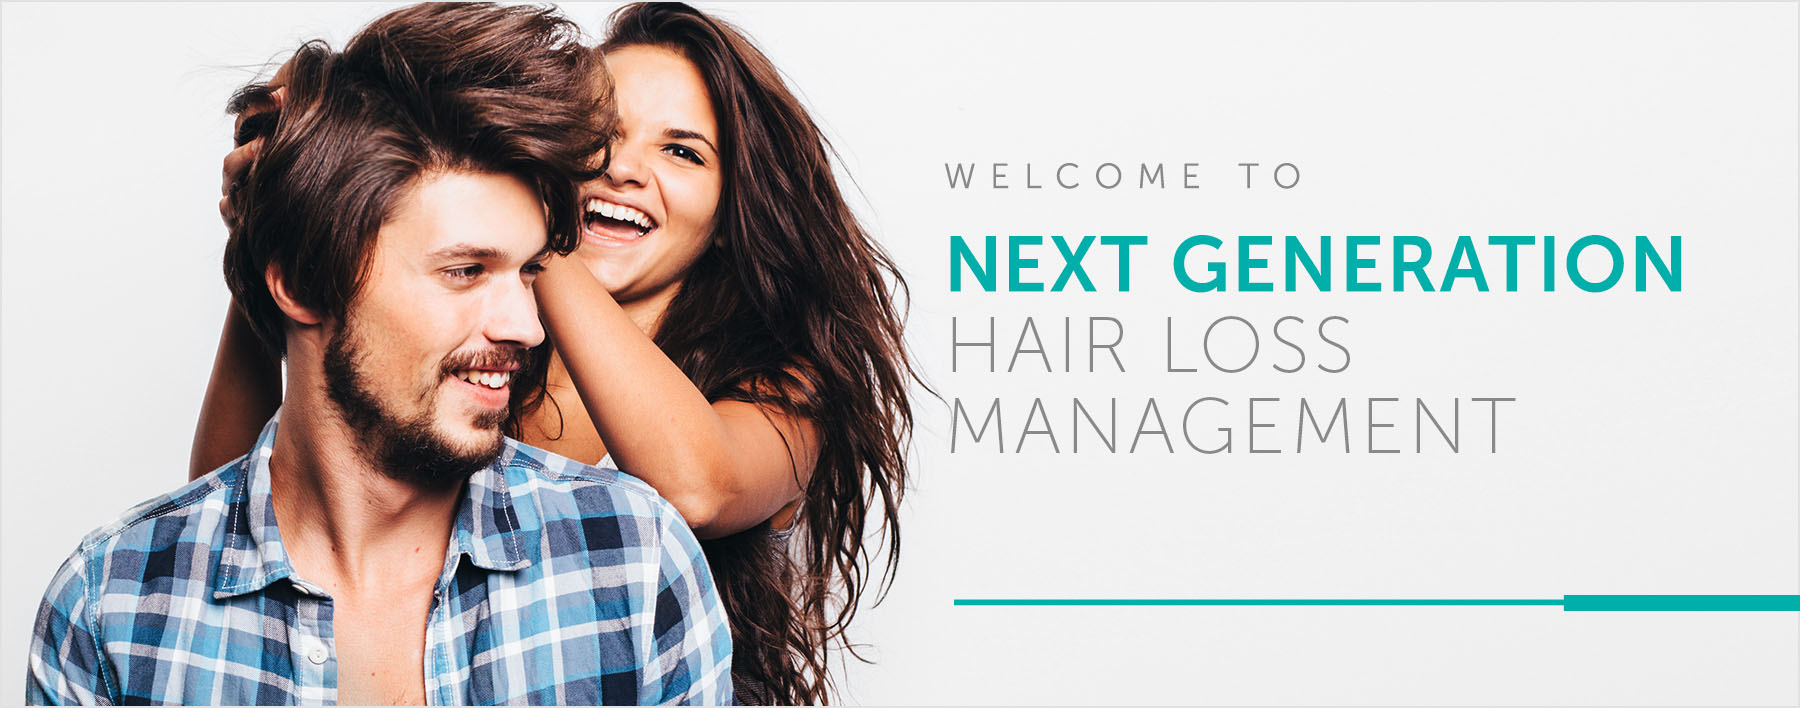 Next Generation Hair Loss Management